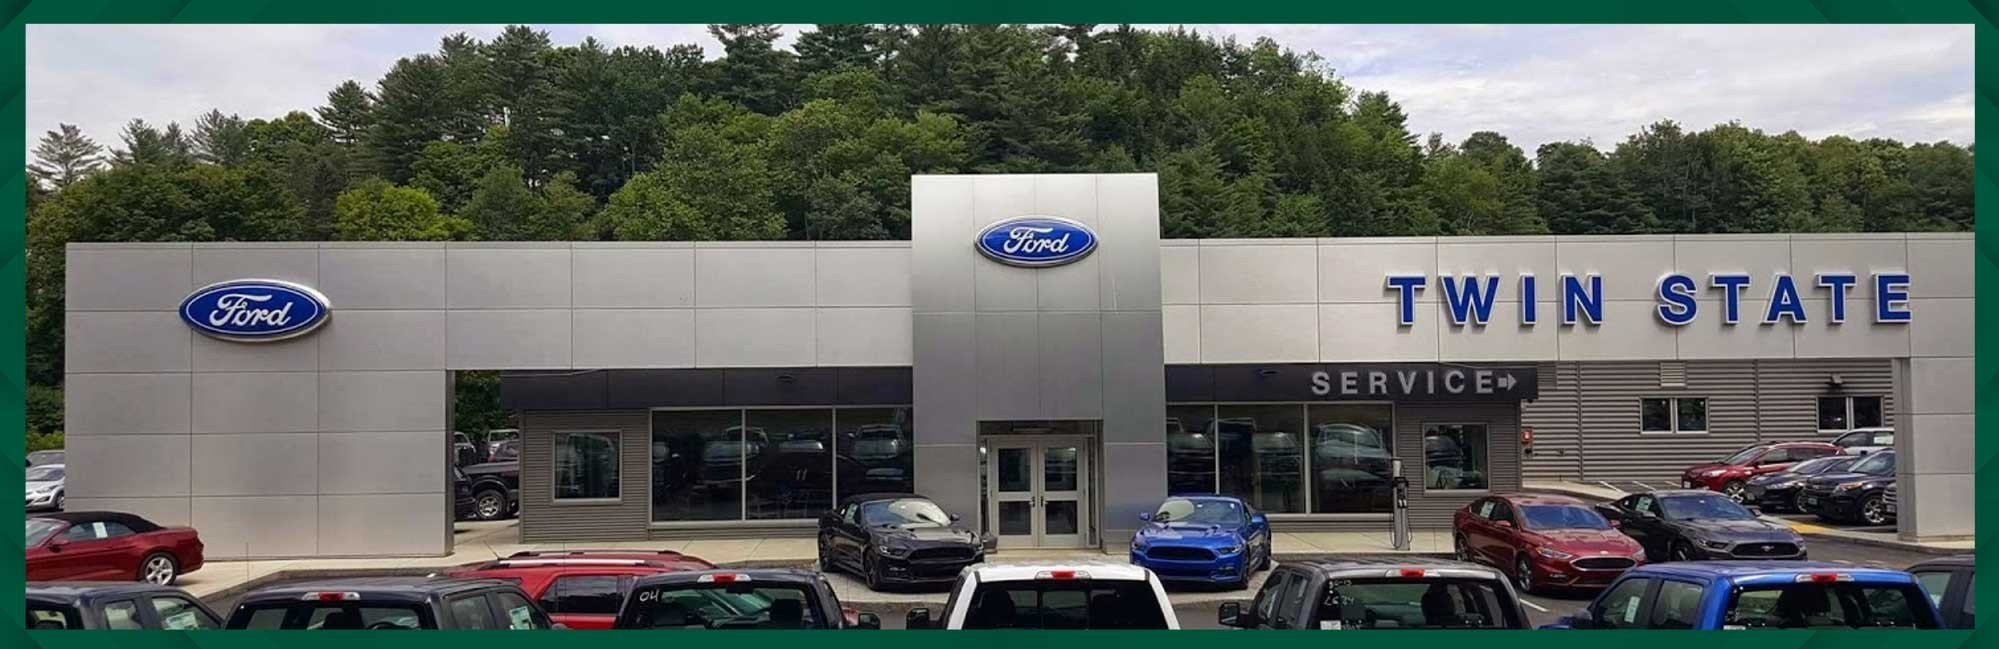 Ford dealer Burlington VT